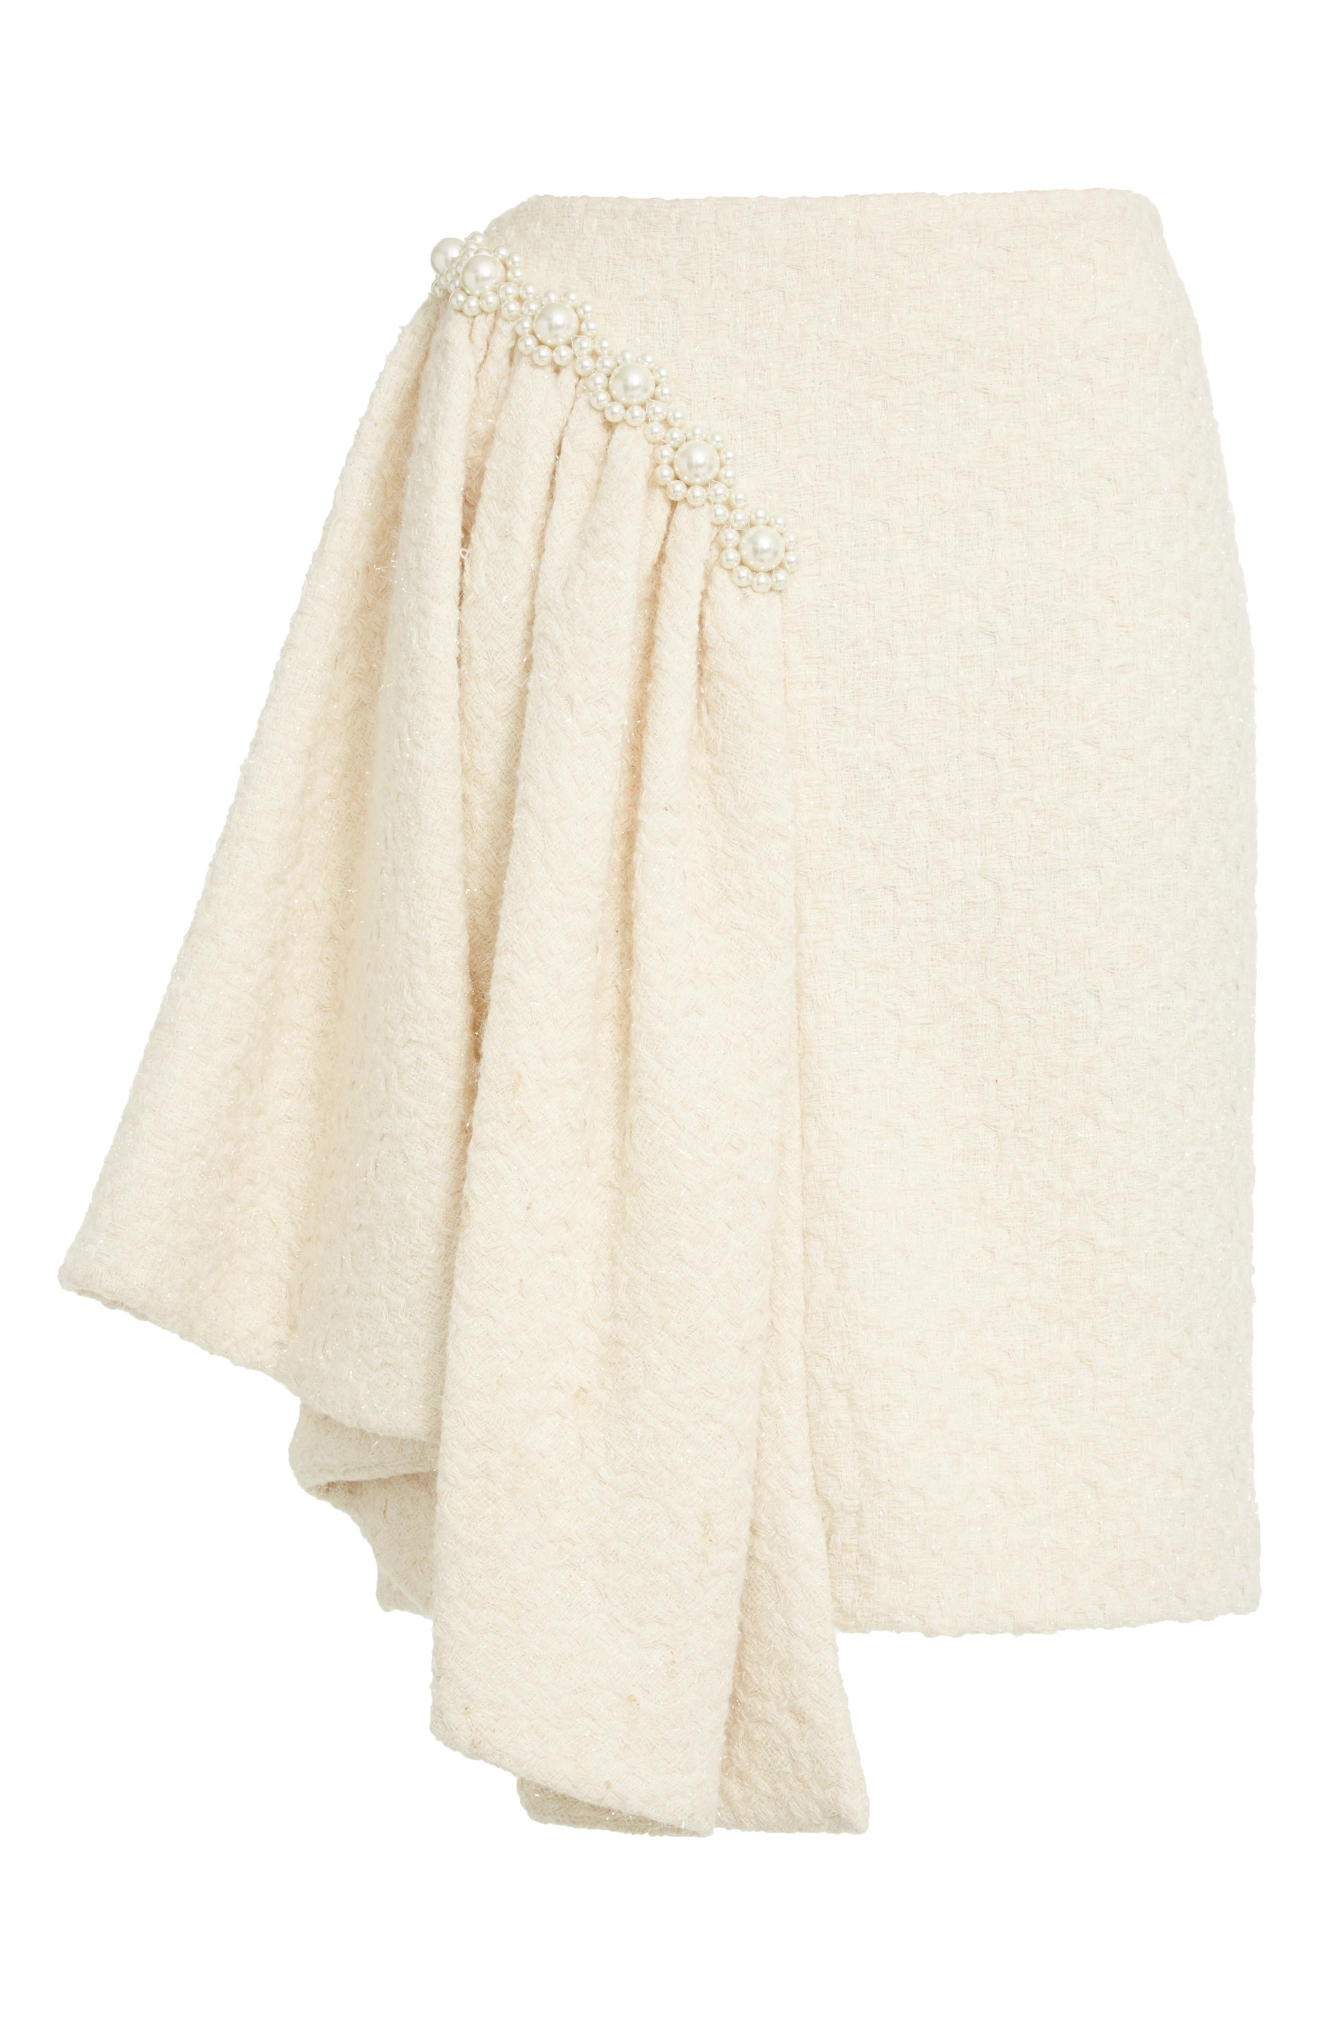 Simone Rocha Lurex Tweed Skirt with Beading on Asymmetrical Hem - $1,435. Get it at nordstrom.com/space. (Image: Nordstrom)